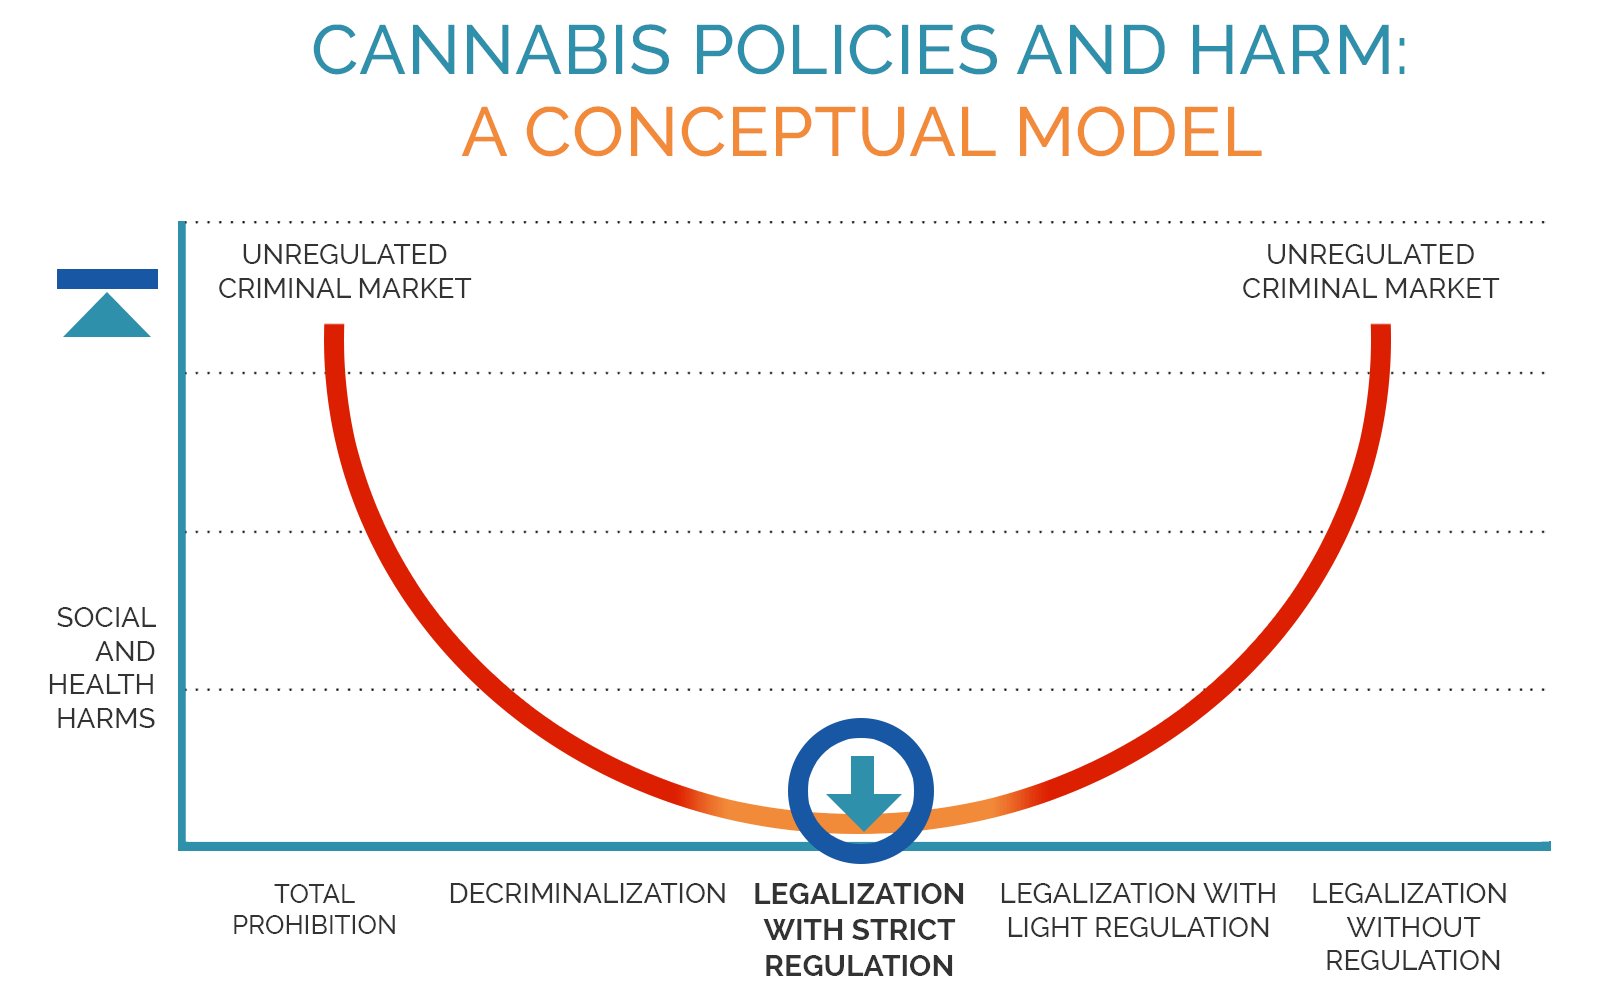 Cannabis Policies and Harm: A Conceptual Model